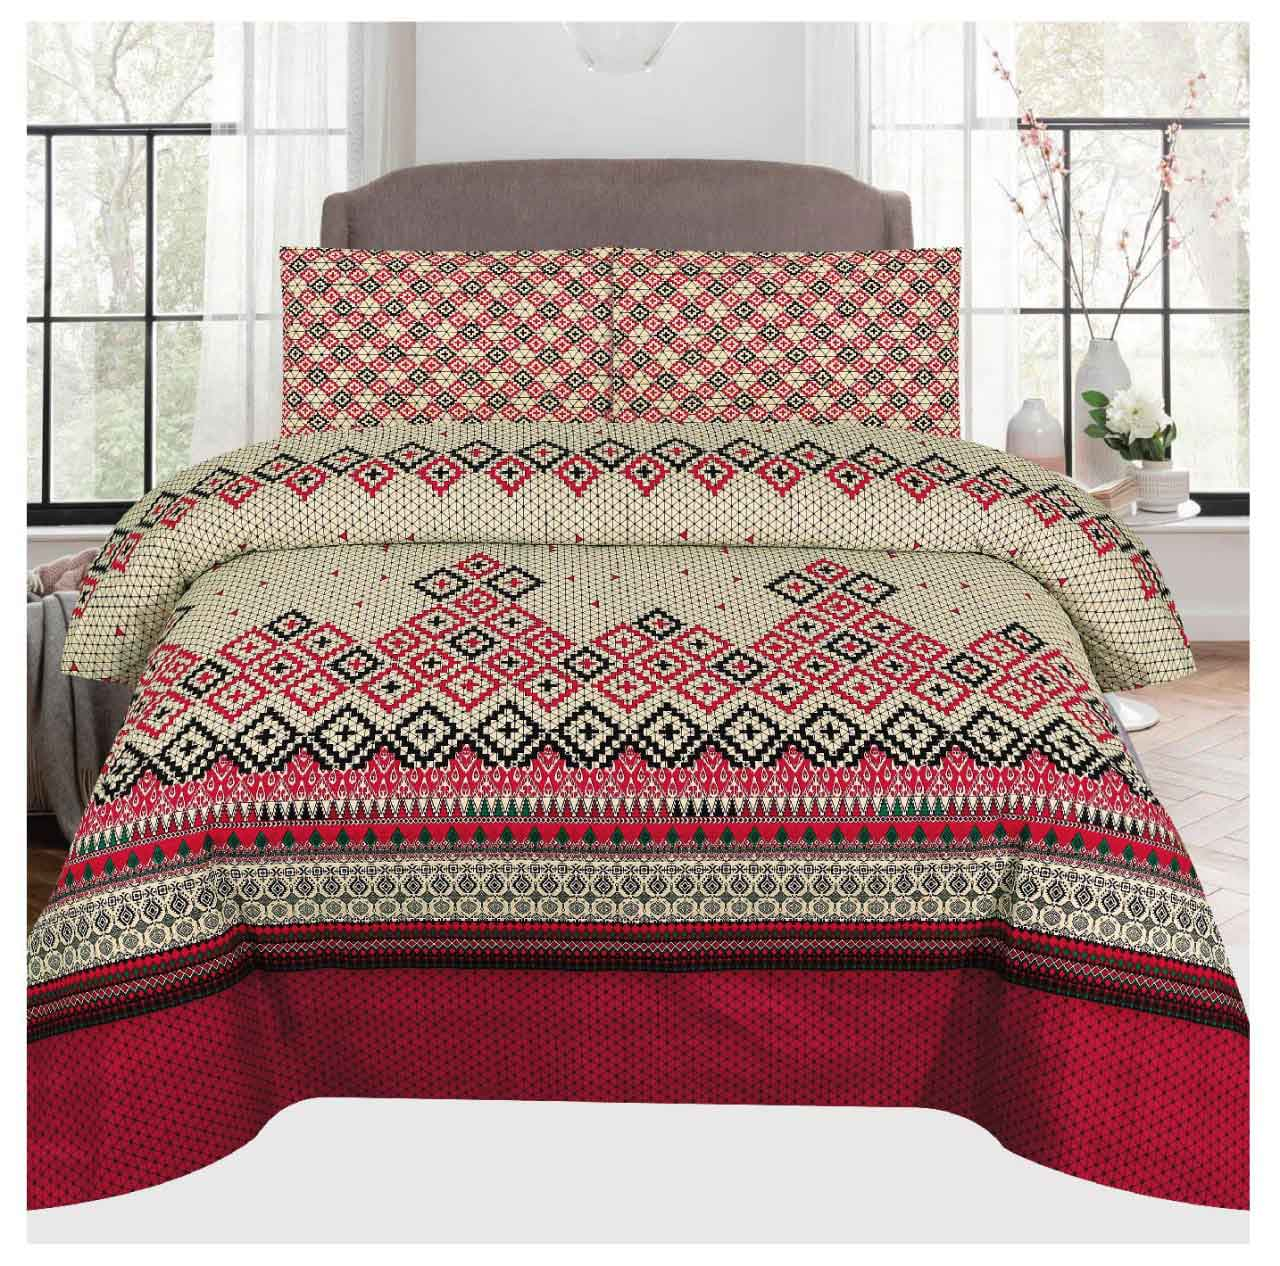 Grace D105- Cotton PC King Size Bedsheet with 2 Pillow Covers.